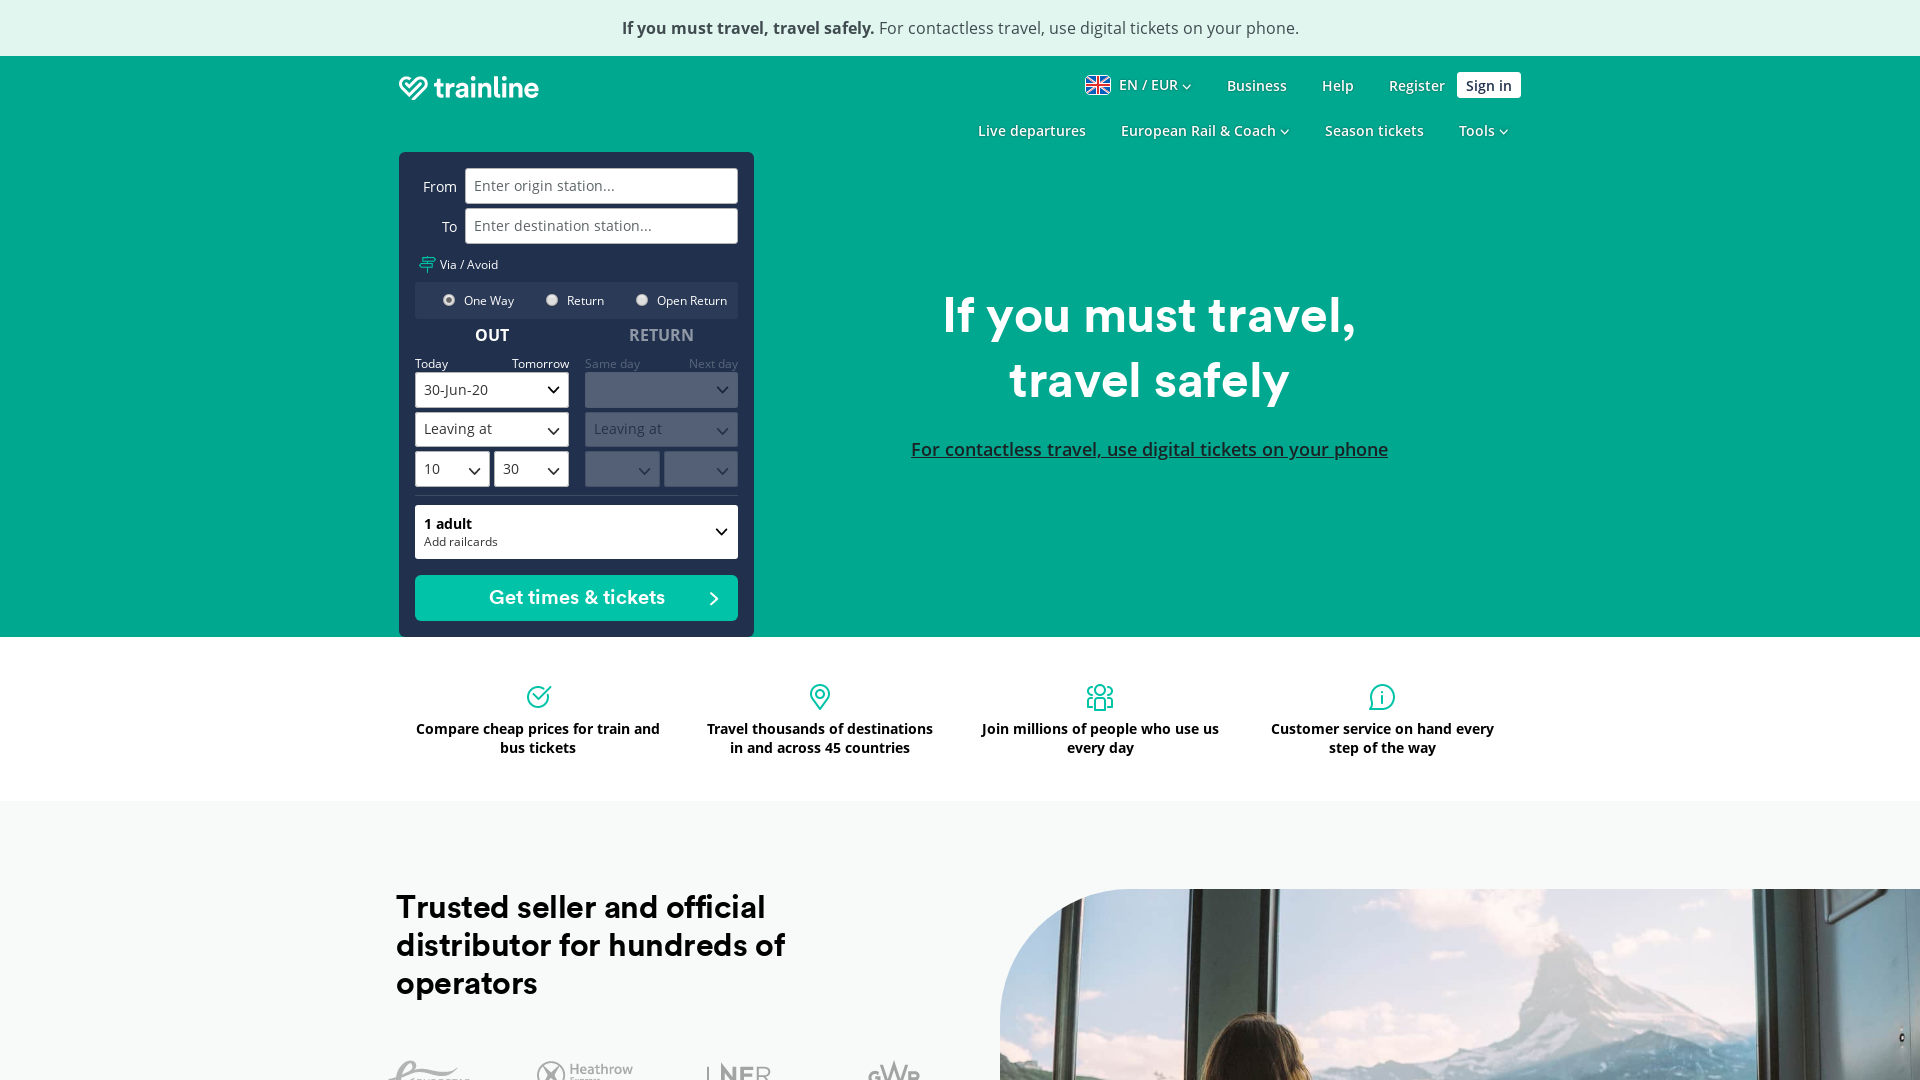 Trainline UK website